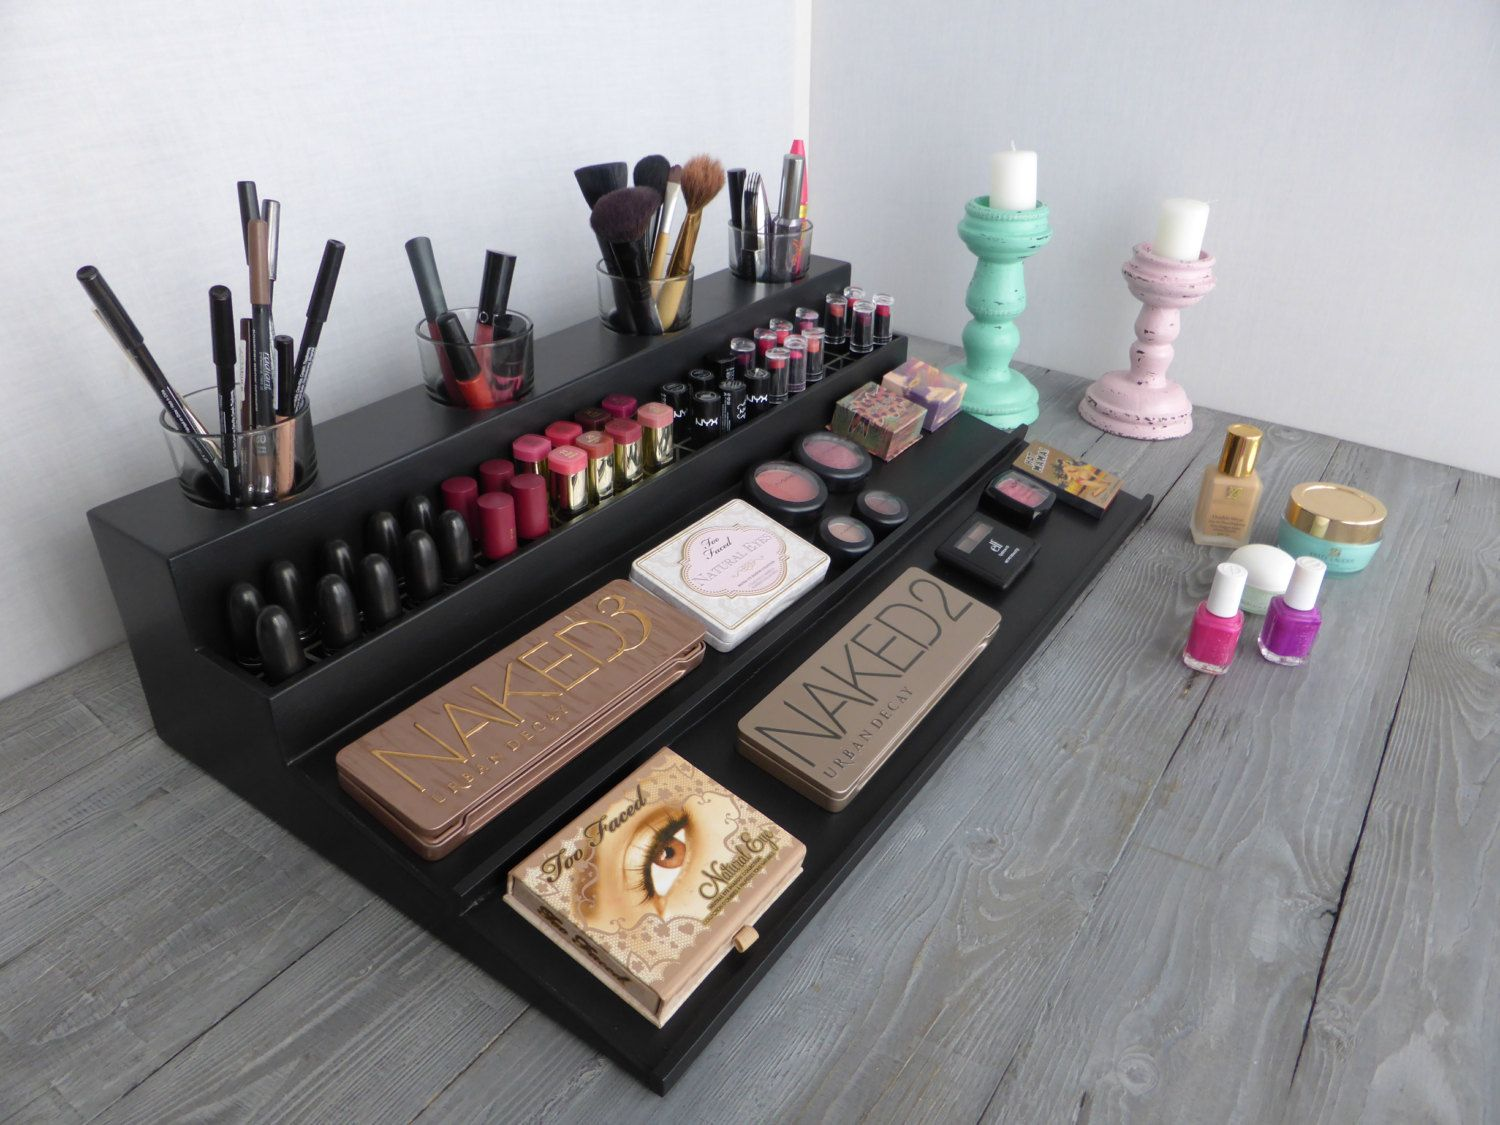 Best Makeup Organizer Ideas Lipstick organizer, Makeup